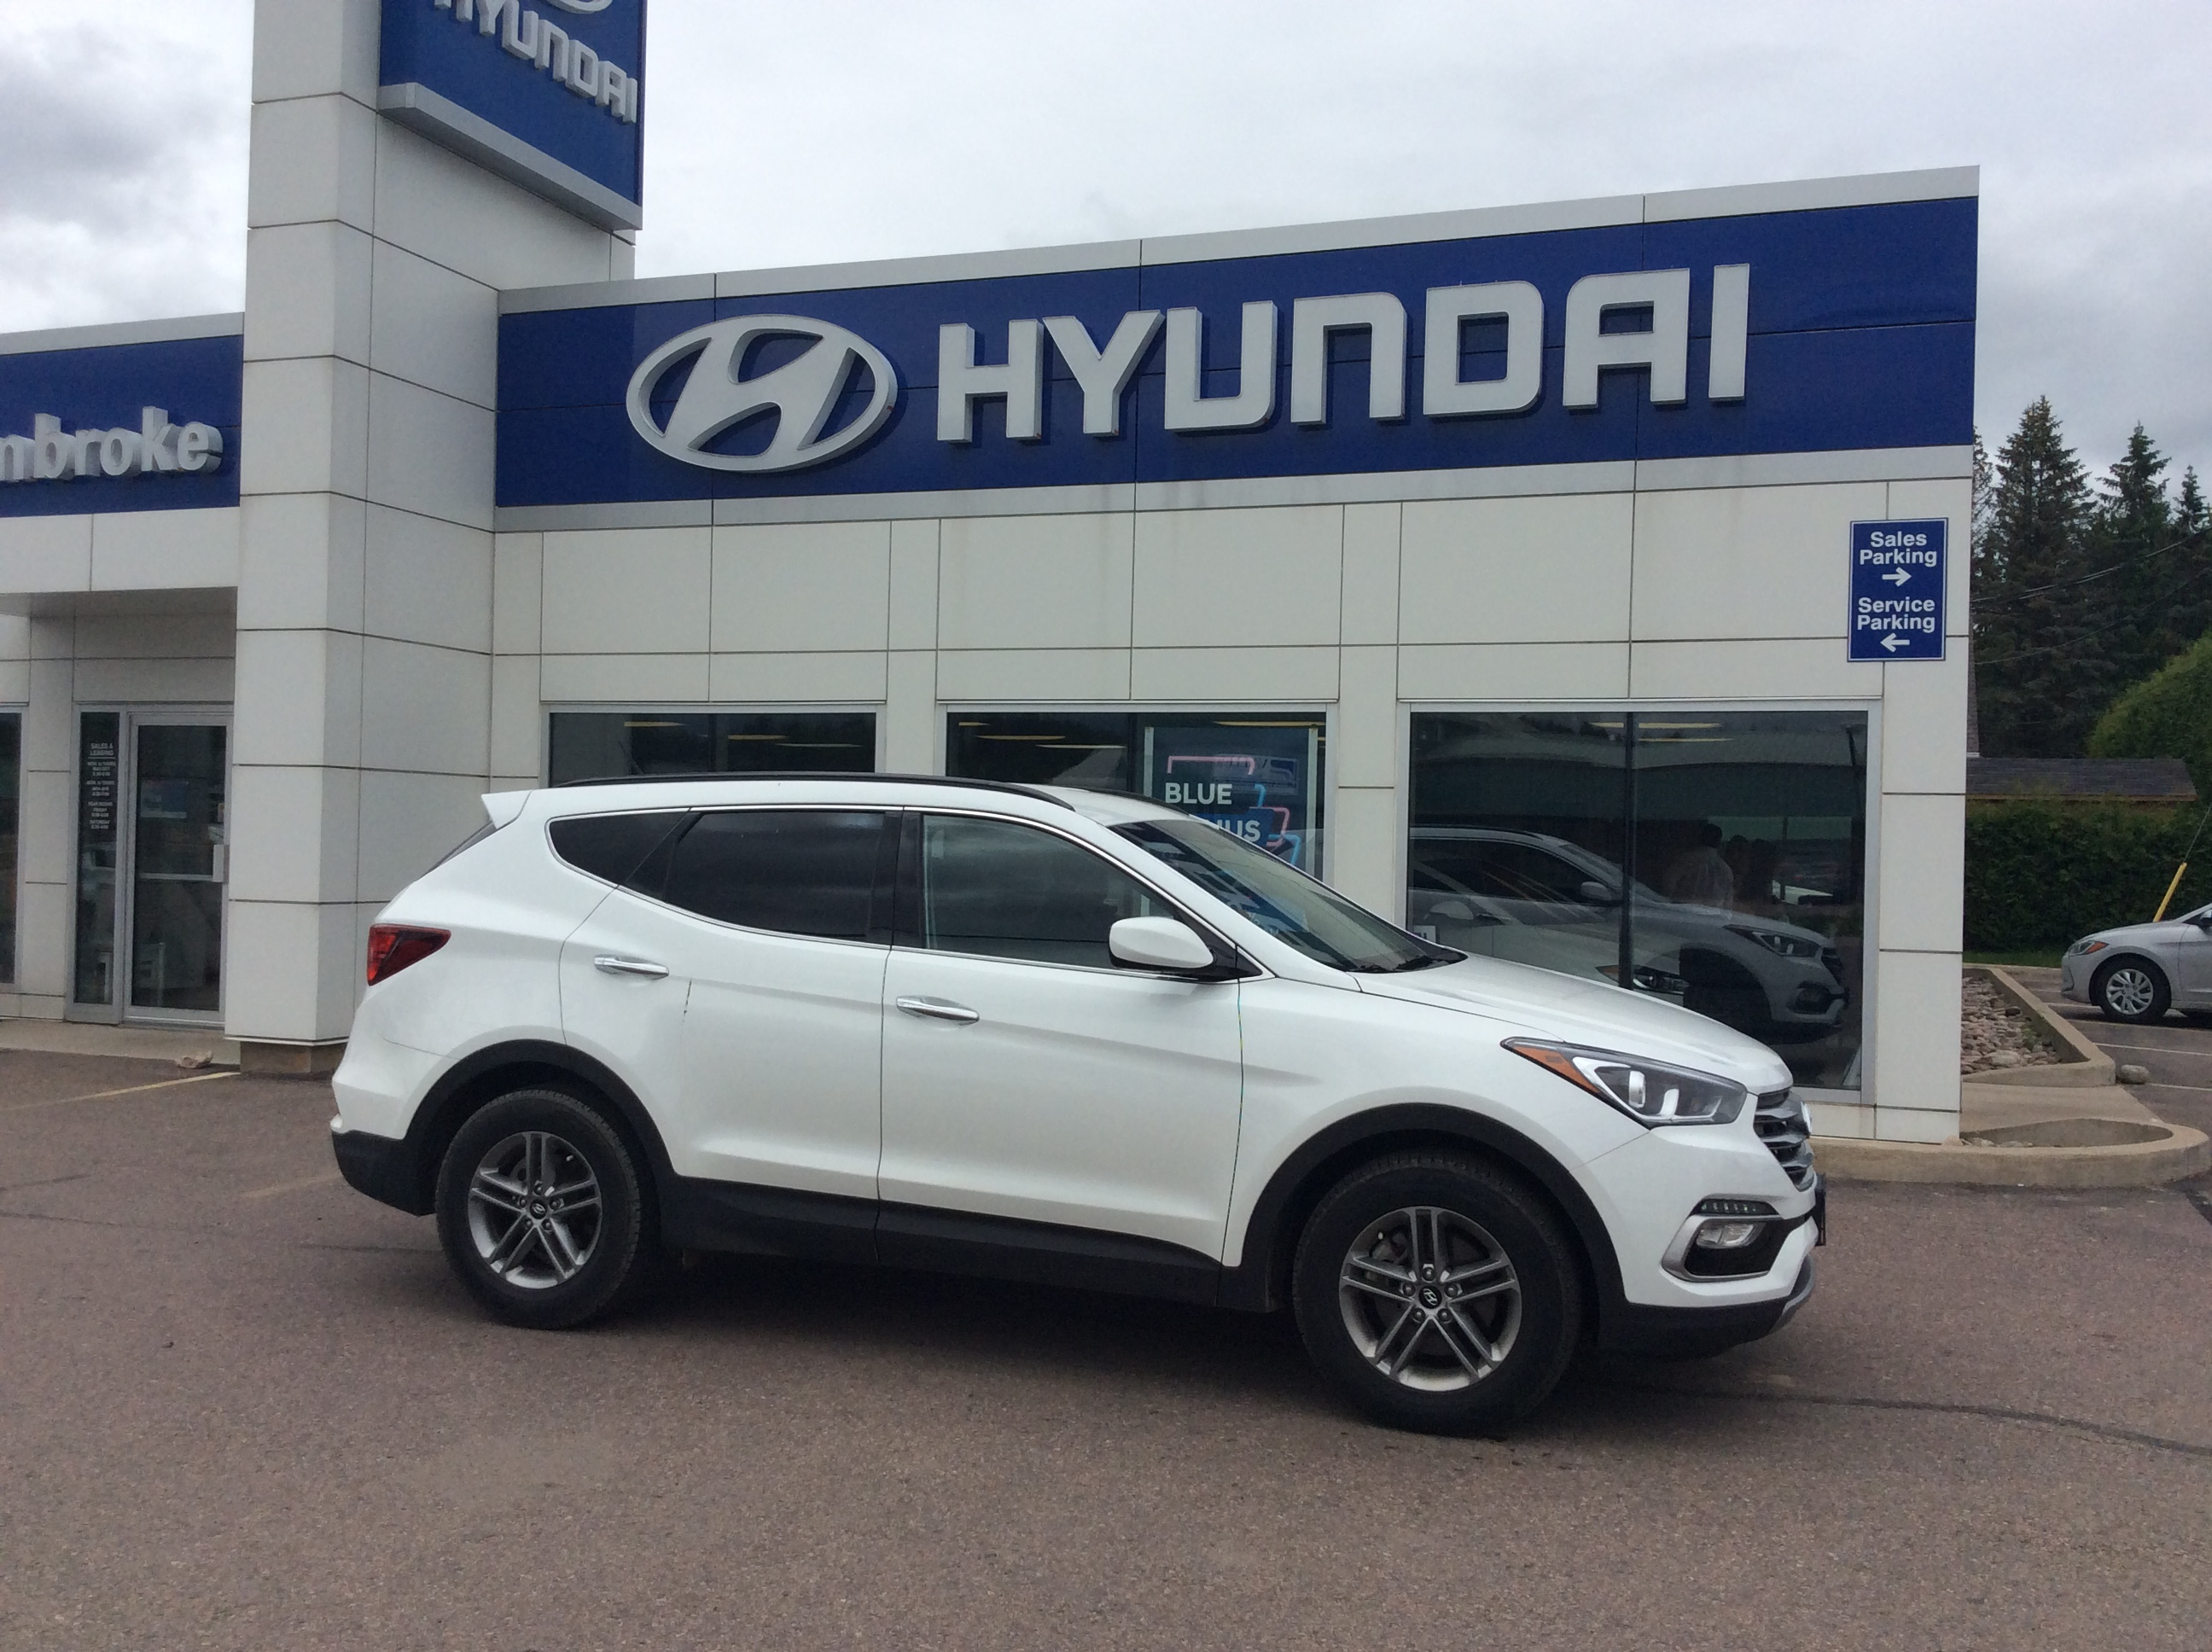 hyundai a price sweet for fe at is sale ride santa awd limited ultimate